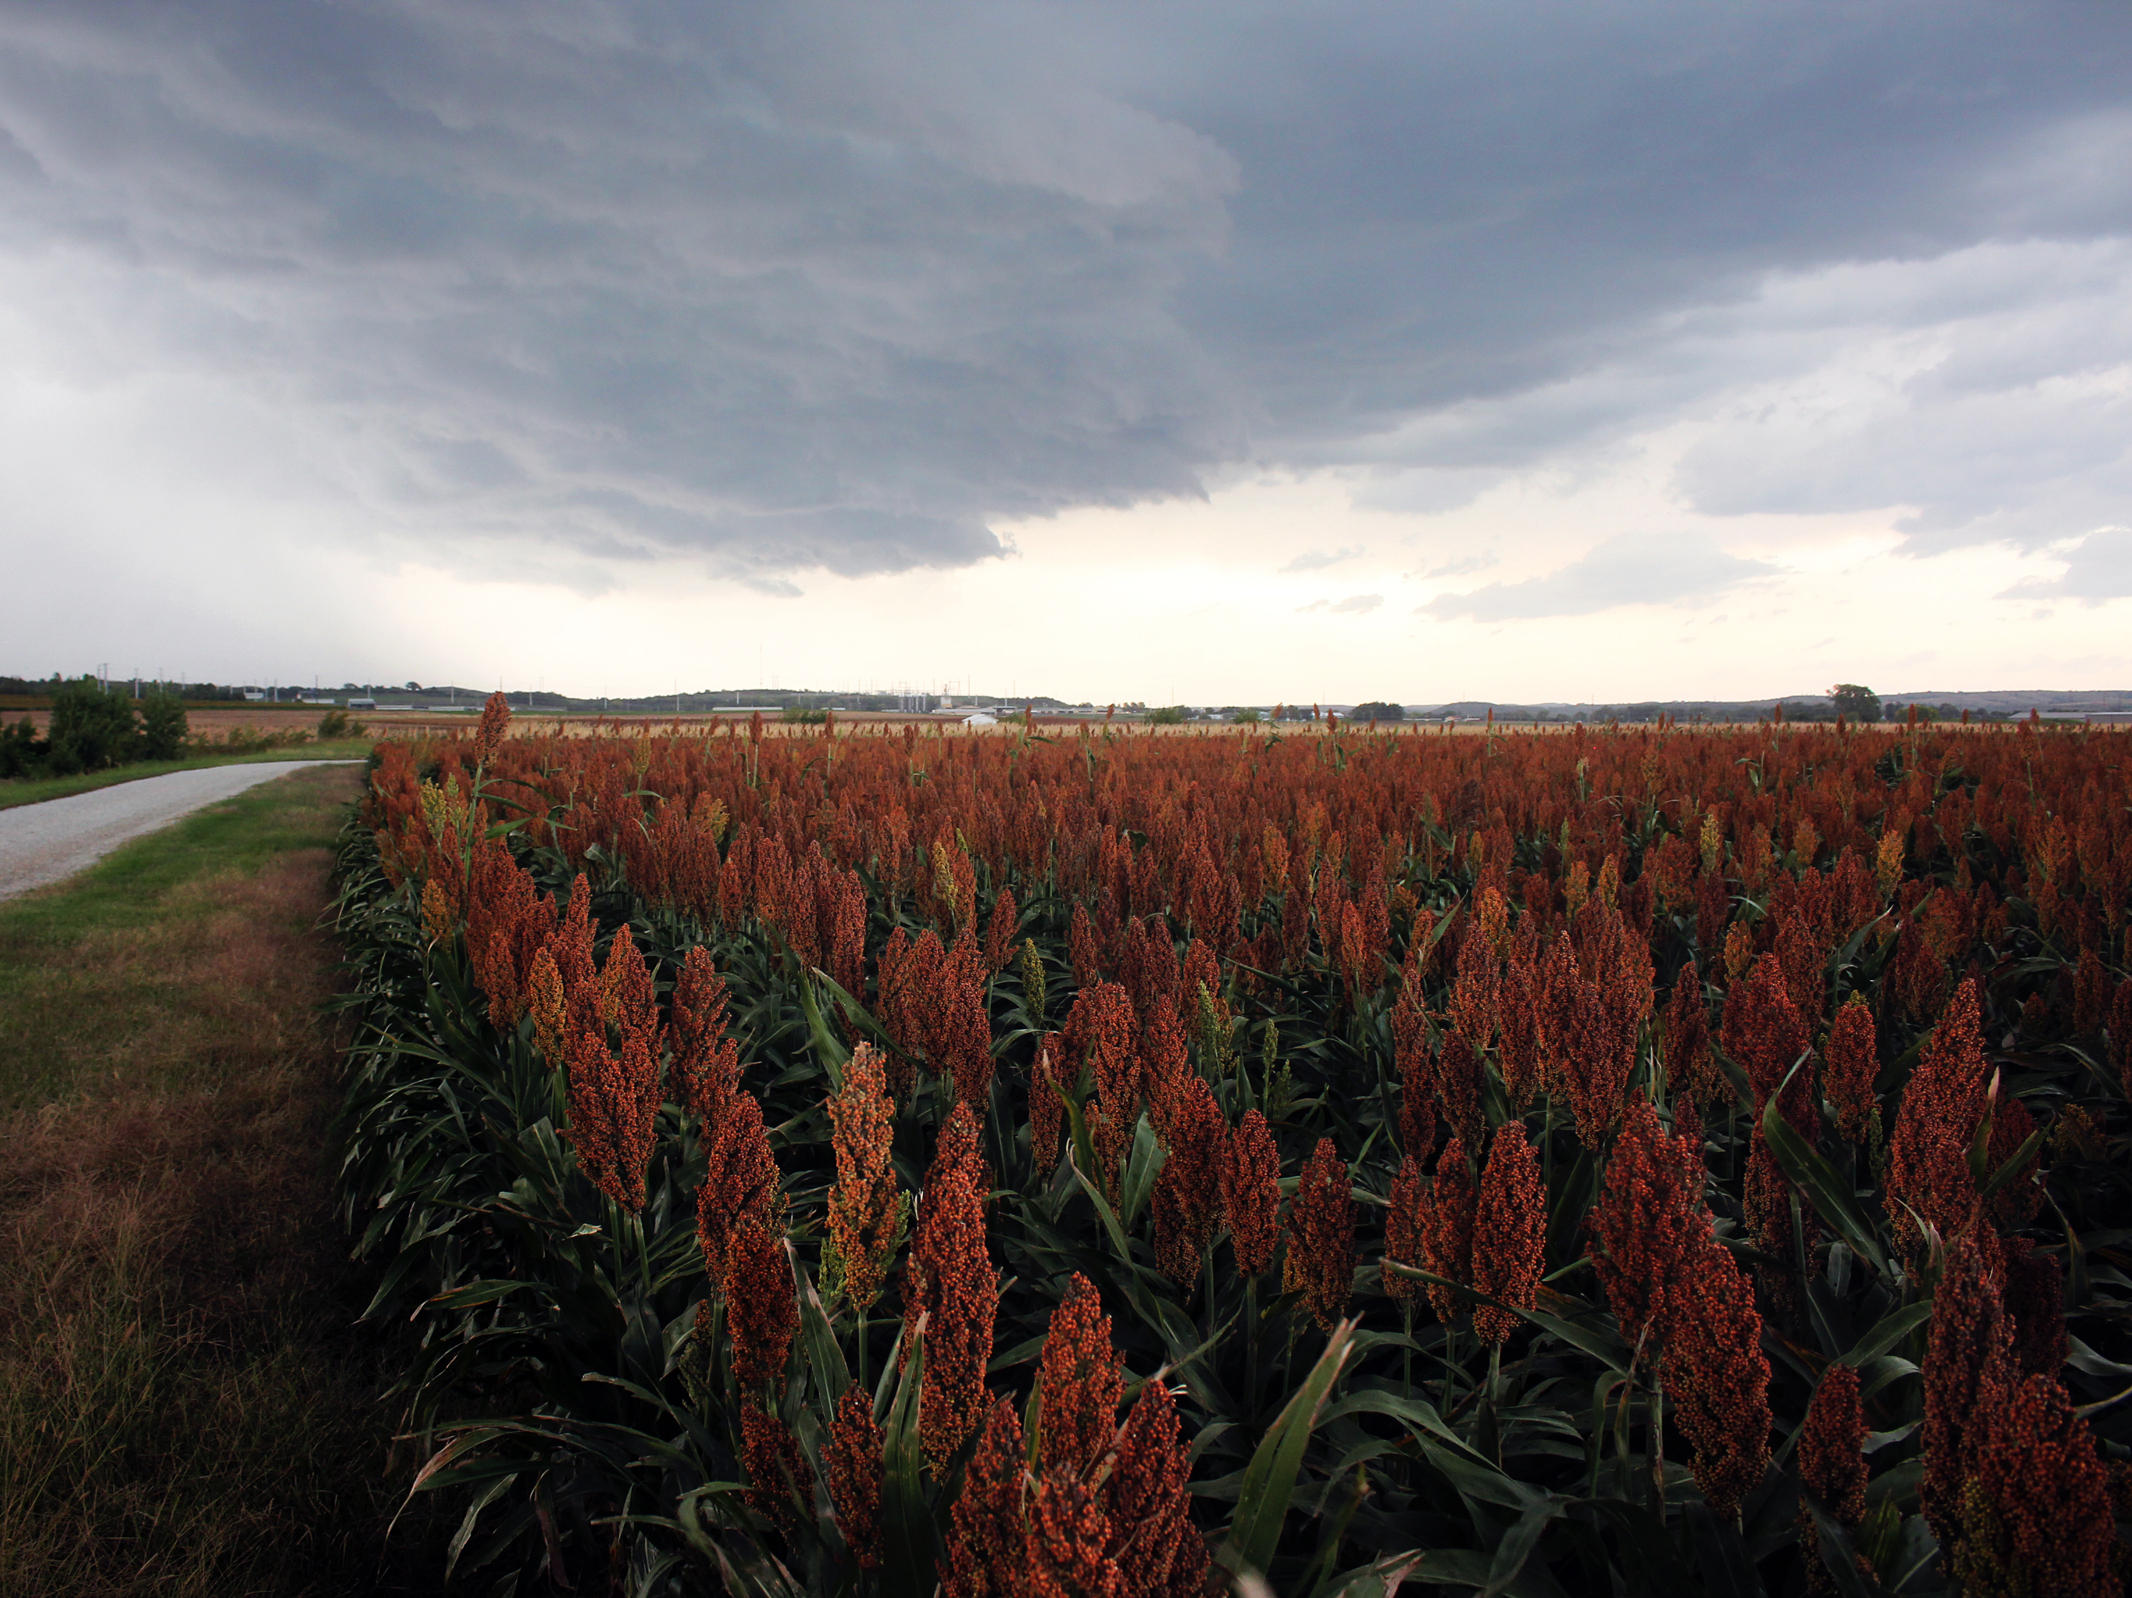 Heat, Drought Draw Farmers Back To Sorghum, The 'Camel Of